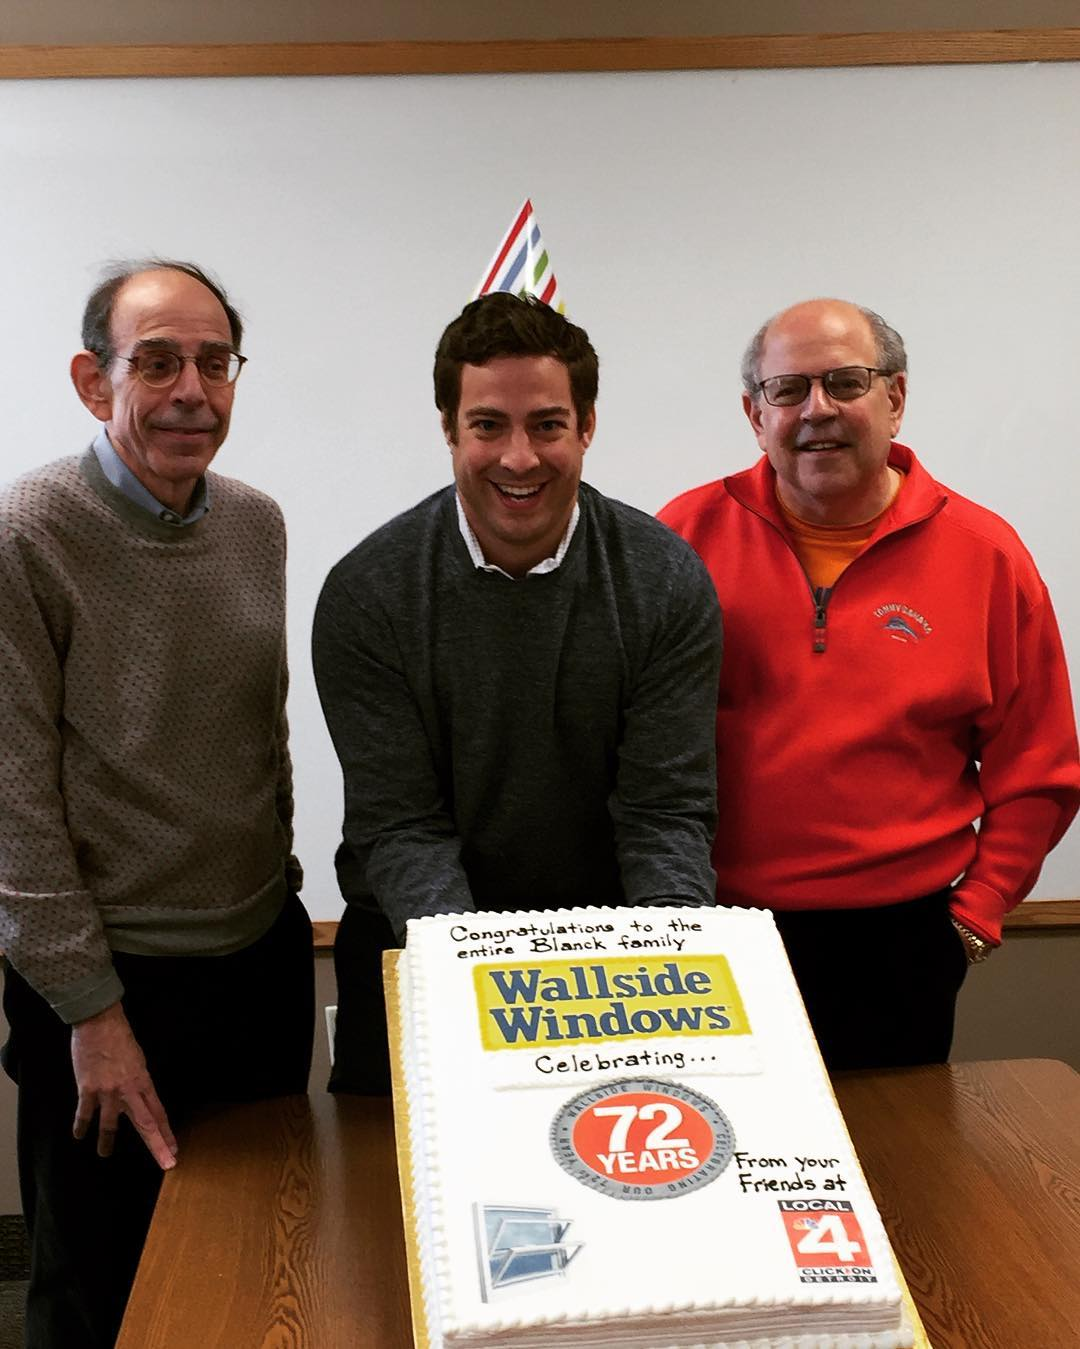 Blanck's sons and grandson celebrate Wallside's 72nd Anniversary.